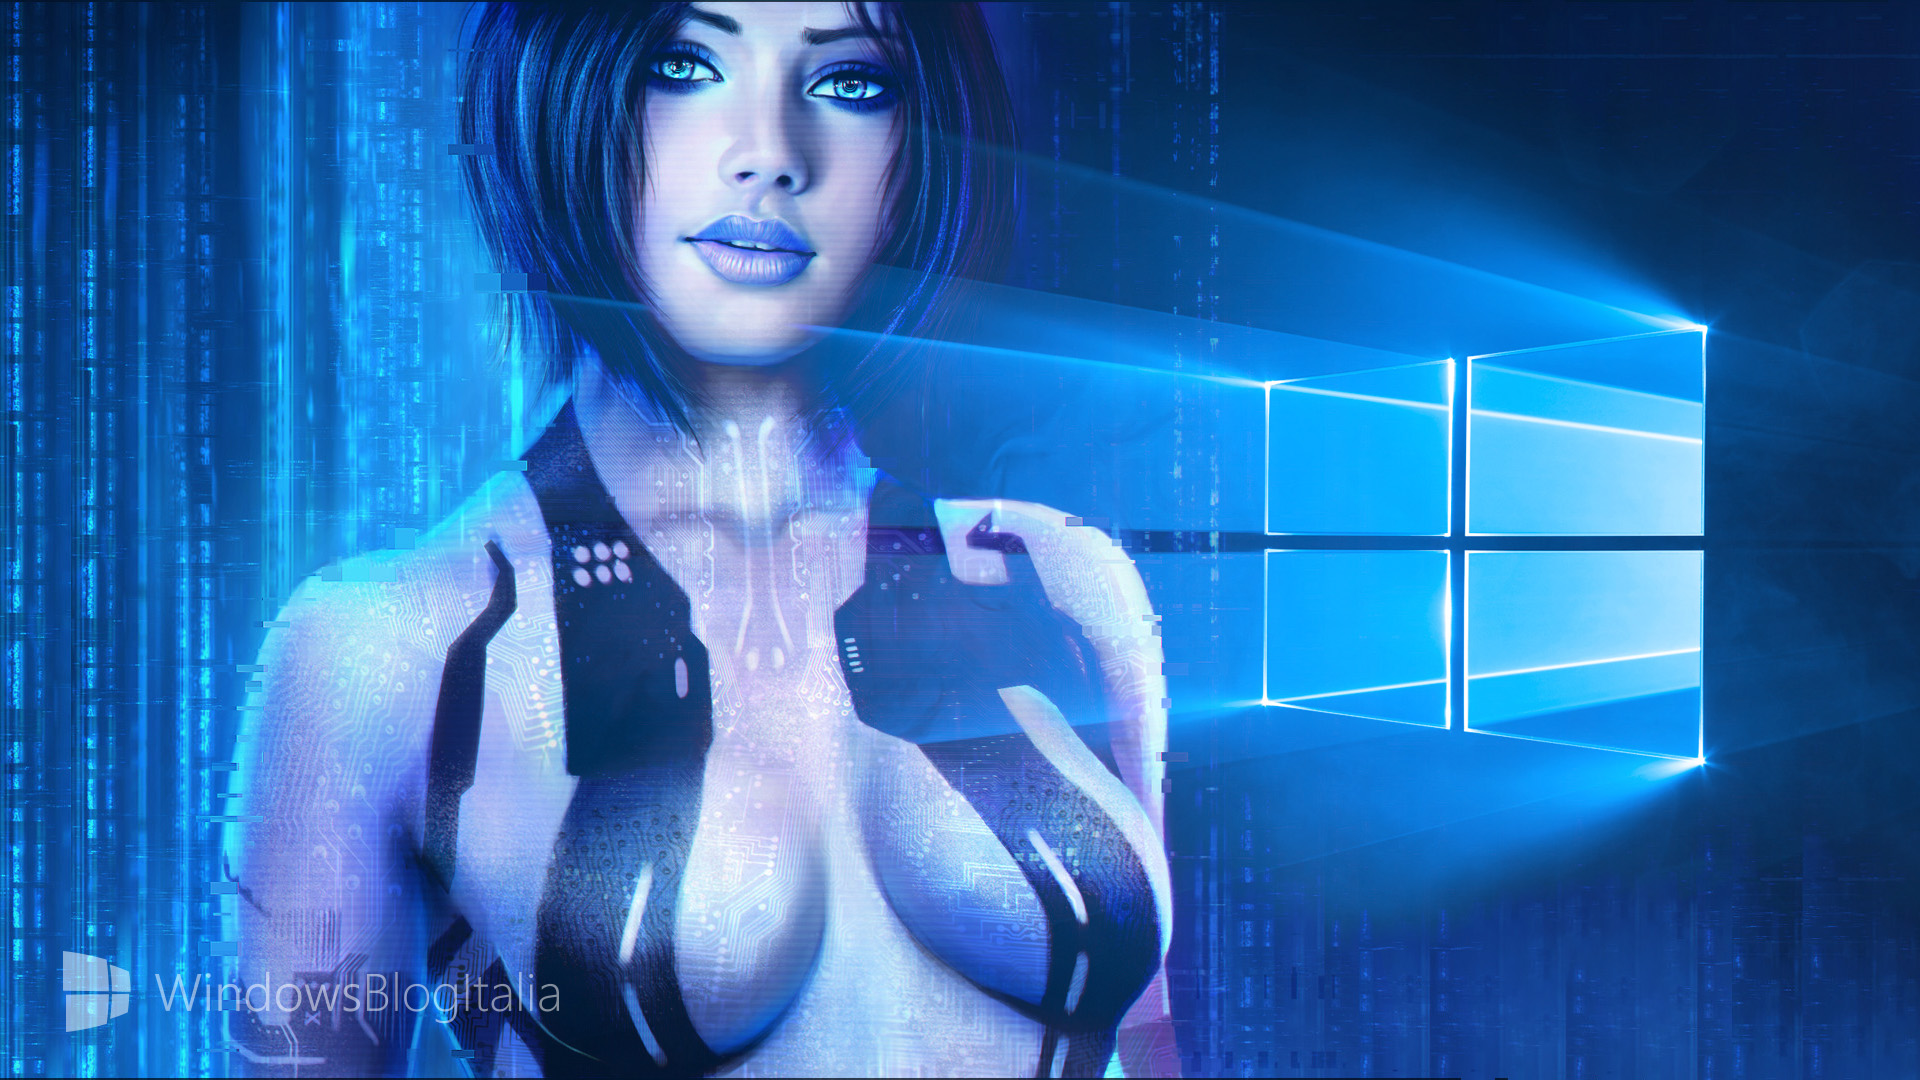 Cortana boobs